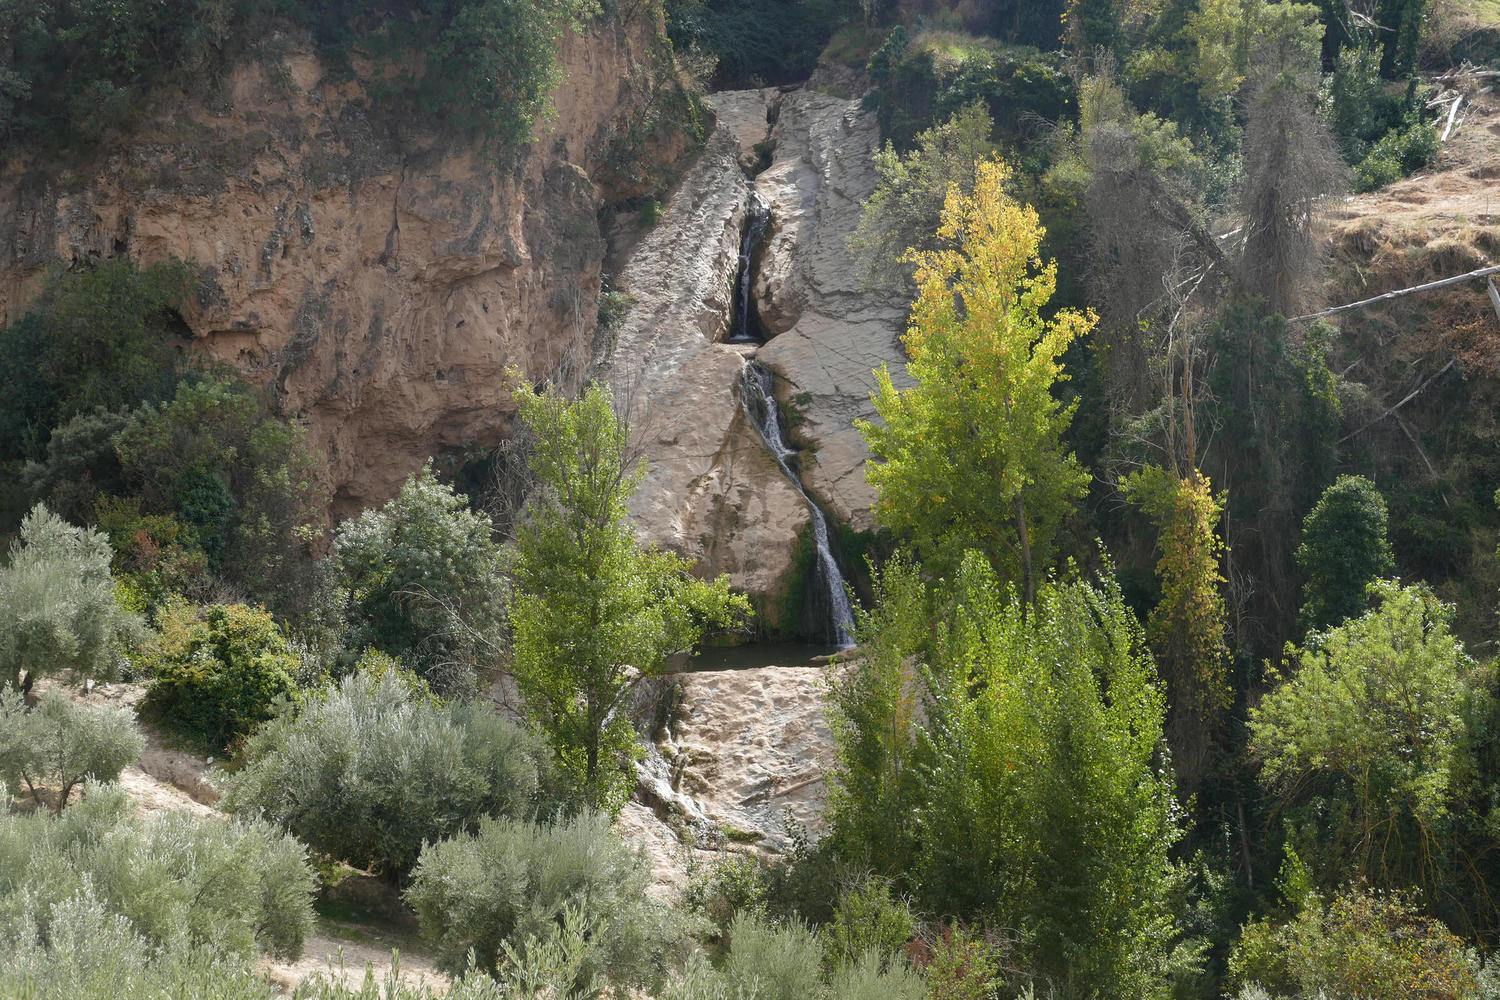 Panoramic view of the Salto del Caballo waterfall near Almedinilla